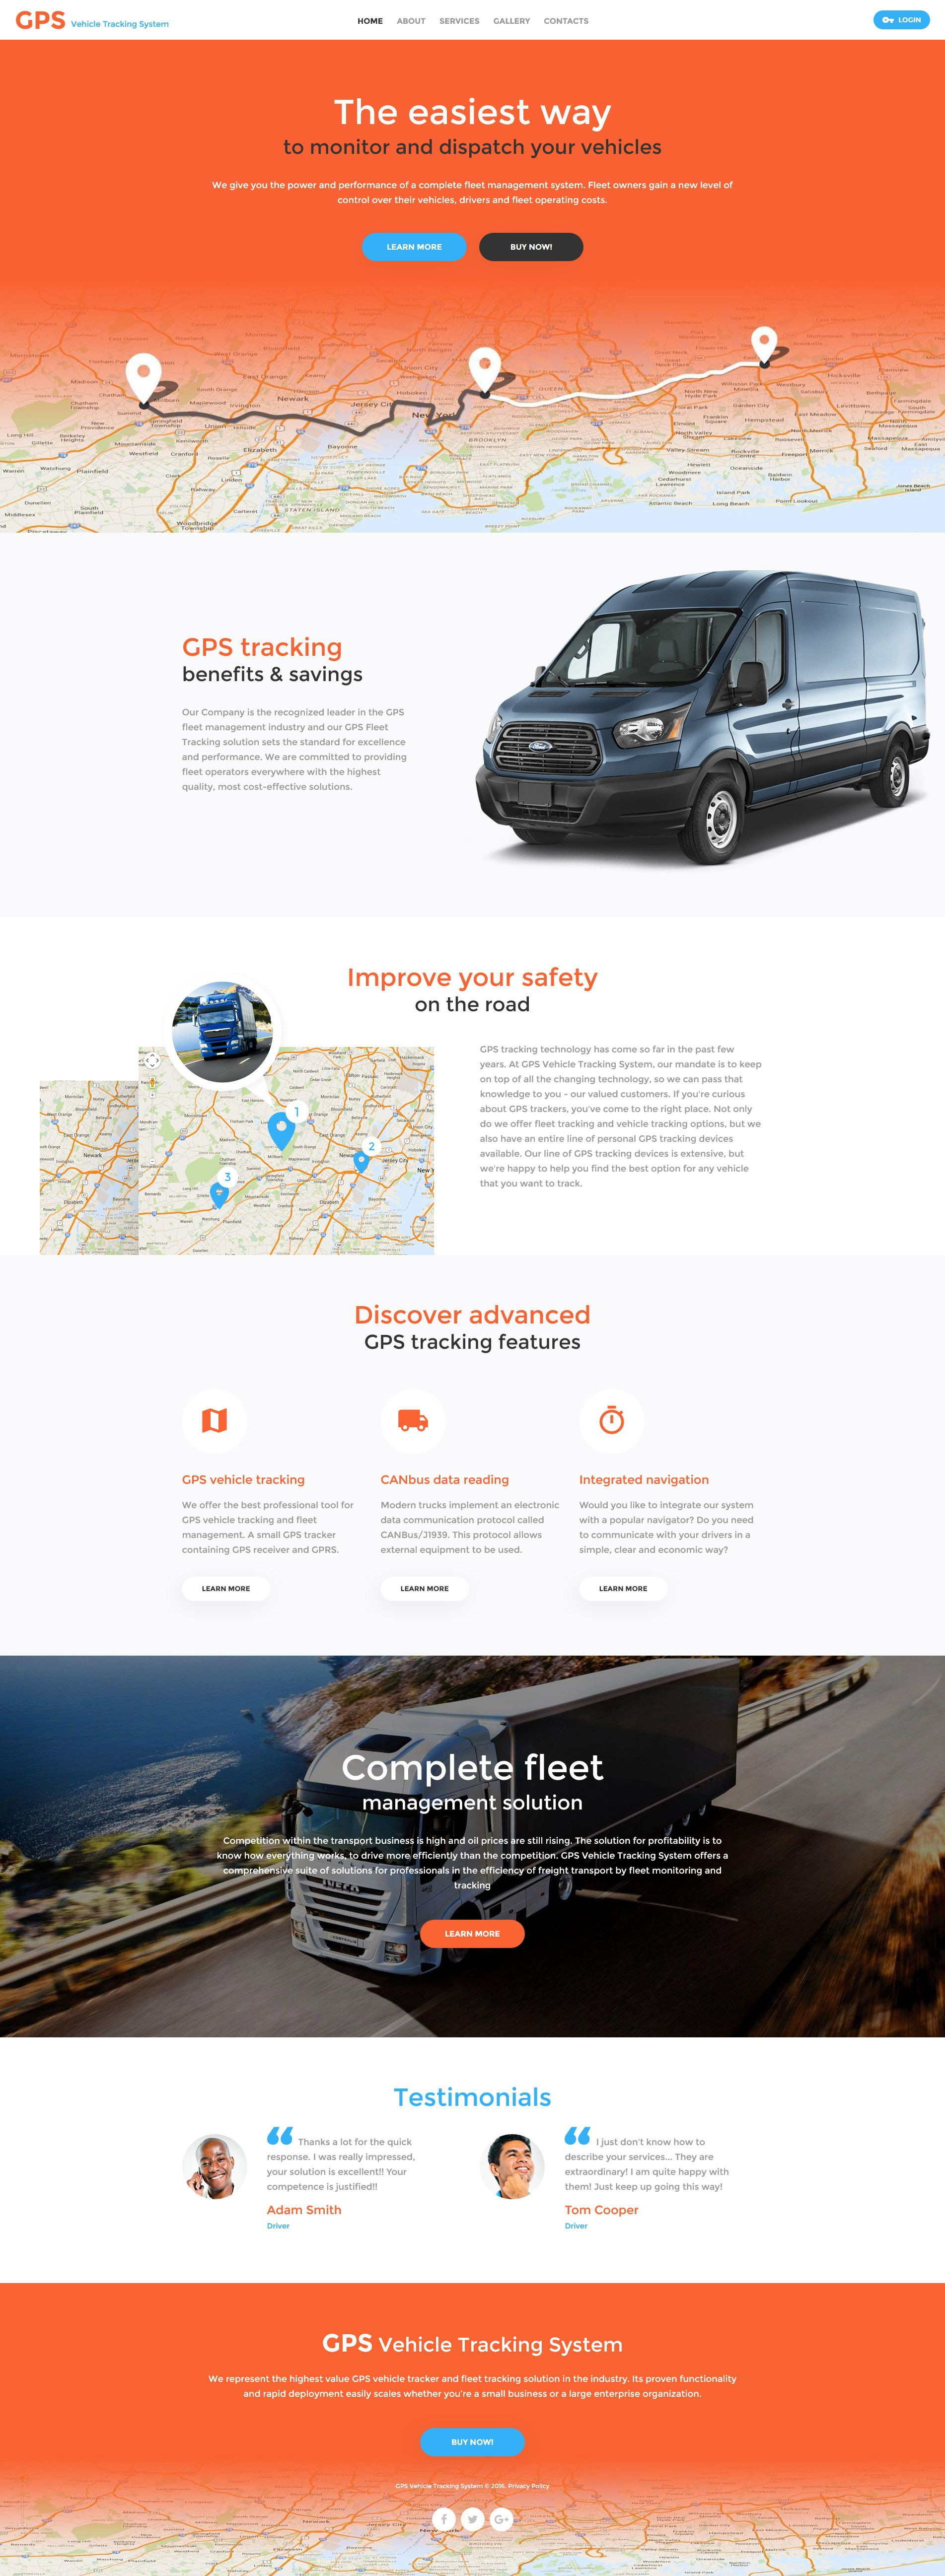 GPS Vehicle Tracking System Website Template | Template, Website and ...